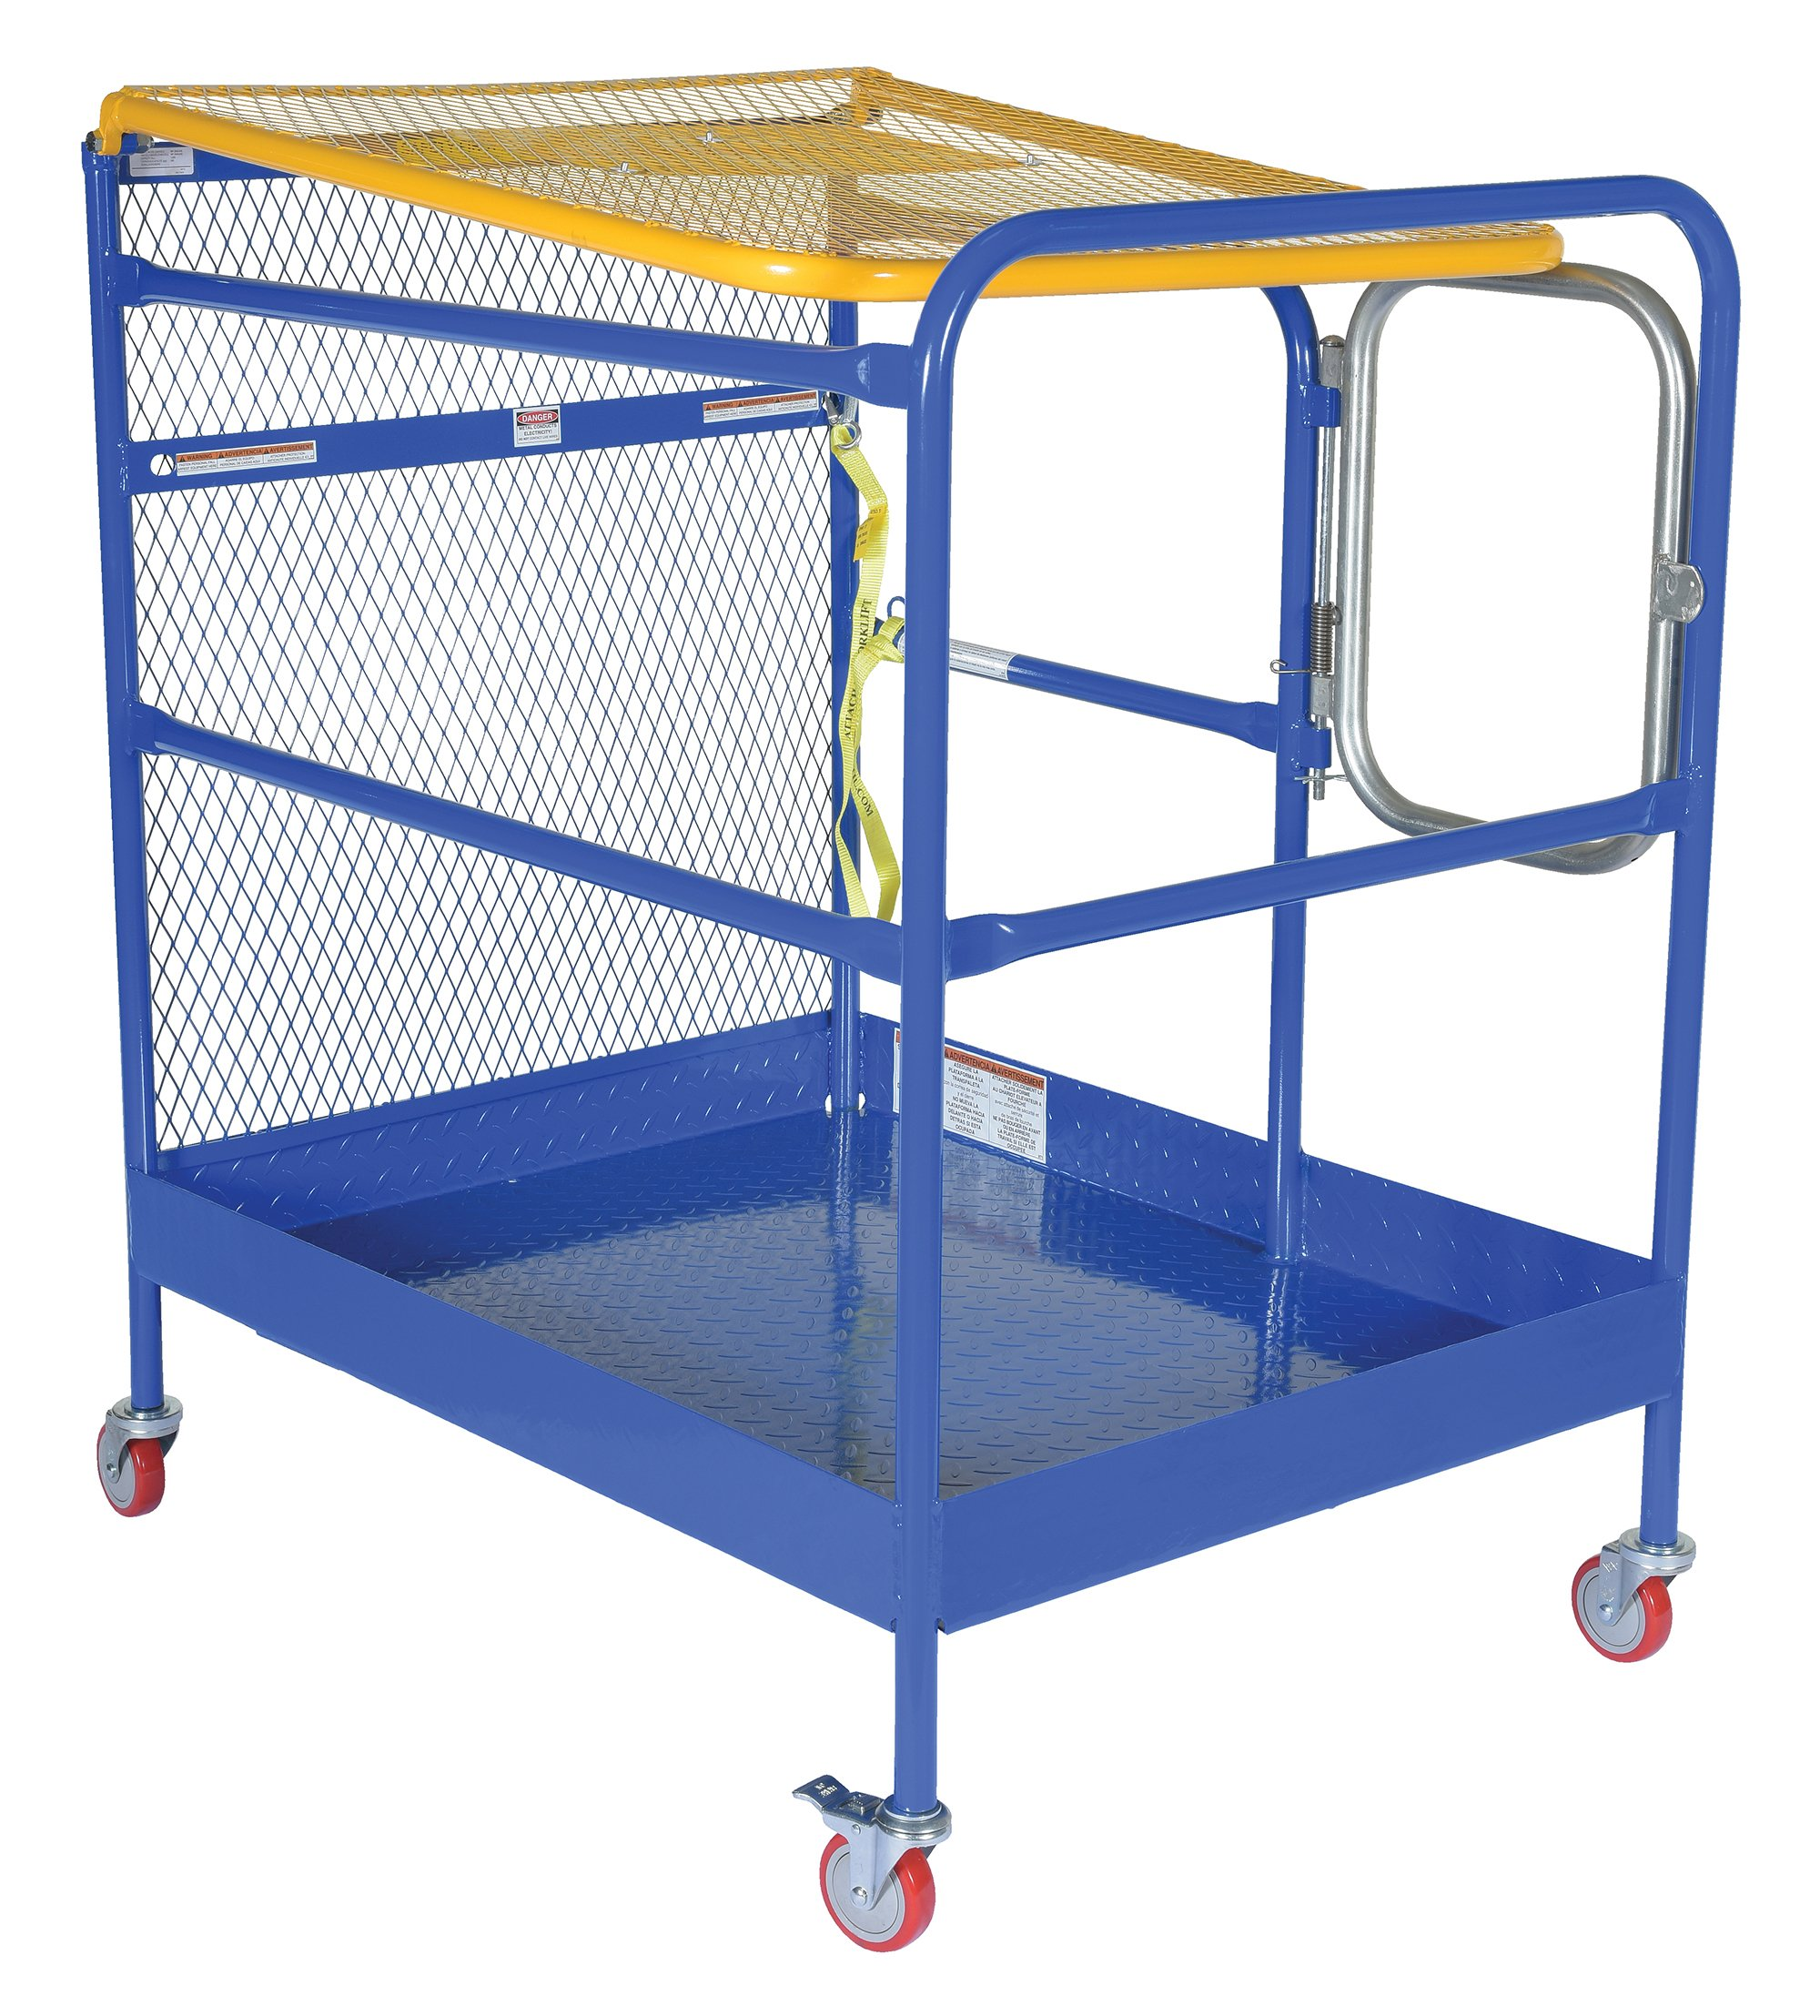 Vestil WP-3648-CA Steel Work Platform, 1000 lb Capacity, 36'' x 48'' with Casters, Powder Coat Blue, not for use in California